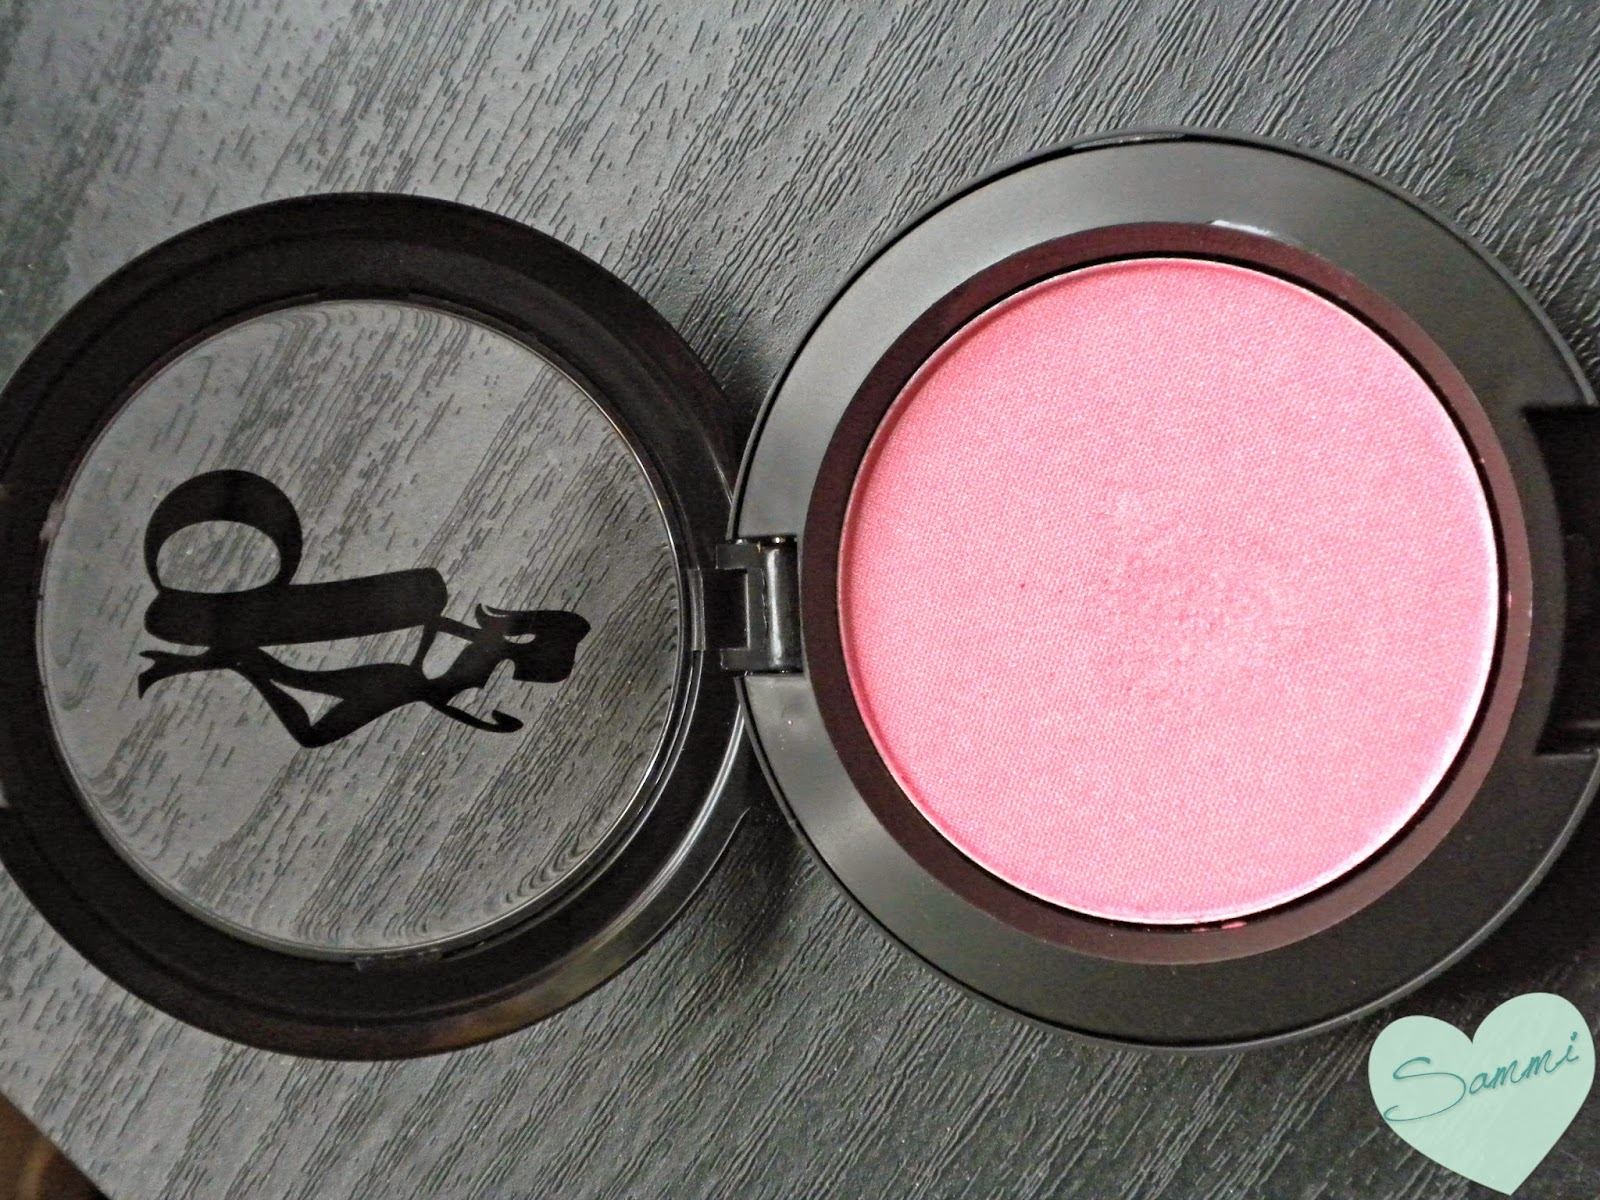 BE A BOMBSHELL Blush in Sweet Cheeks ($16)